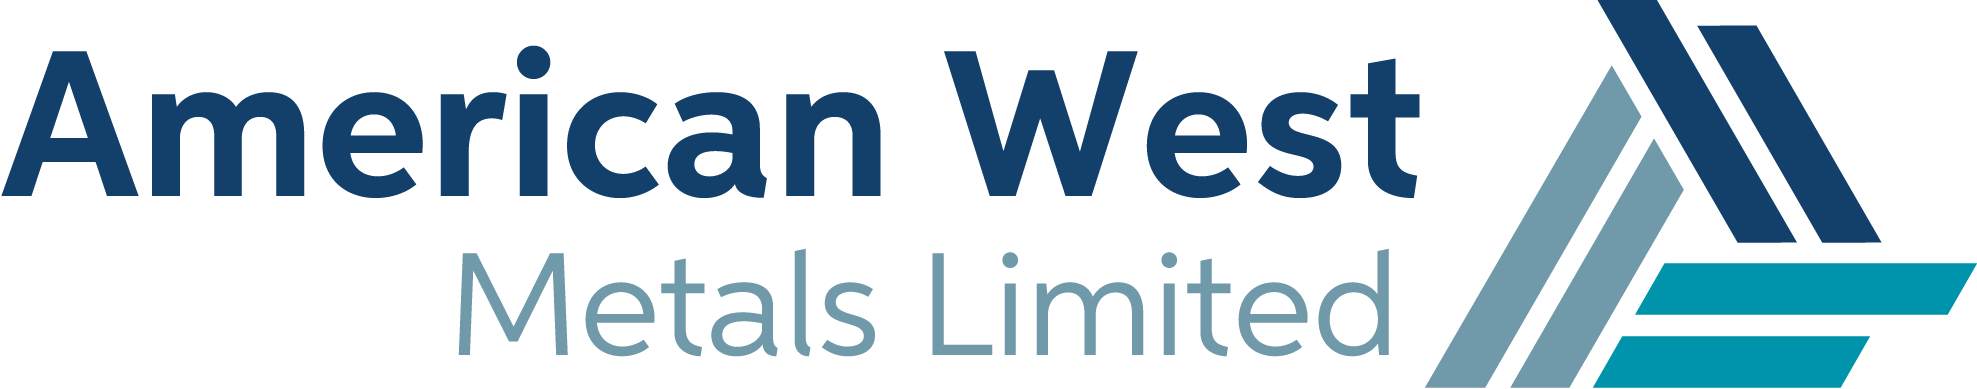 American West Metals Limited